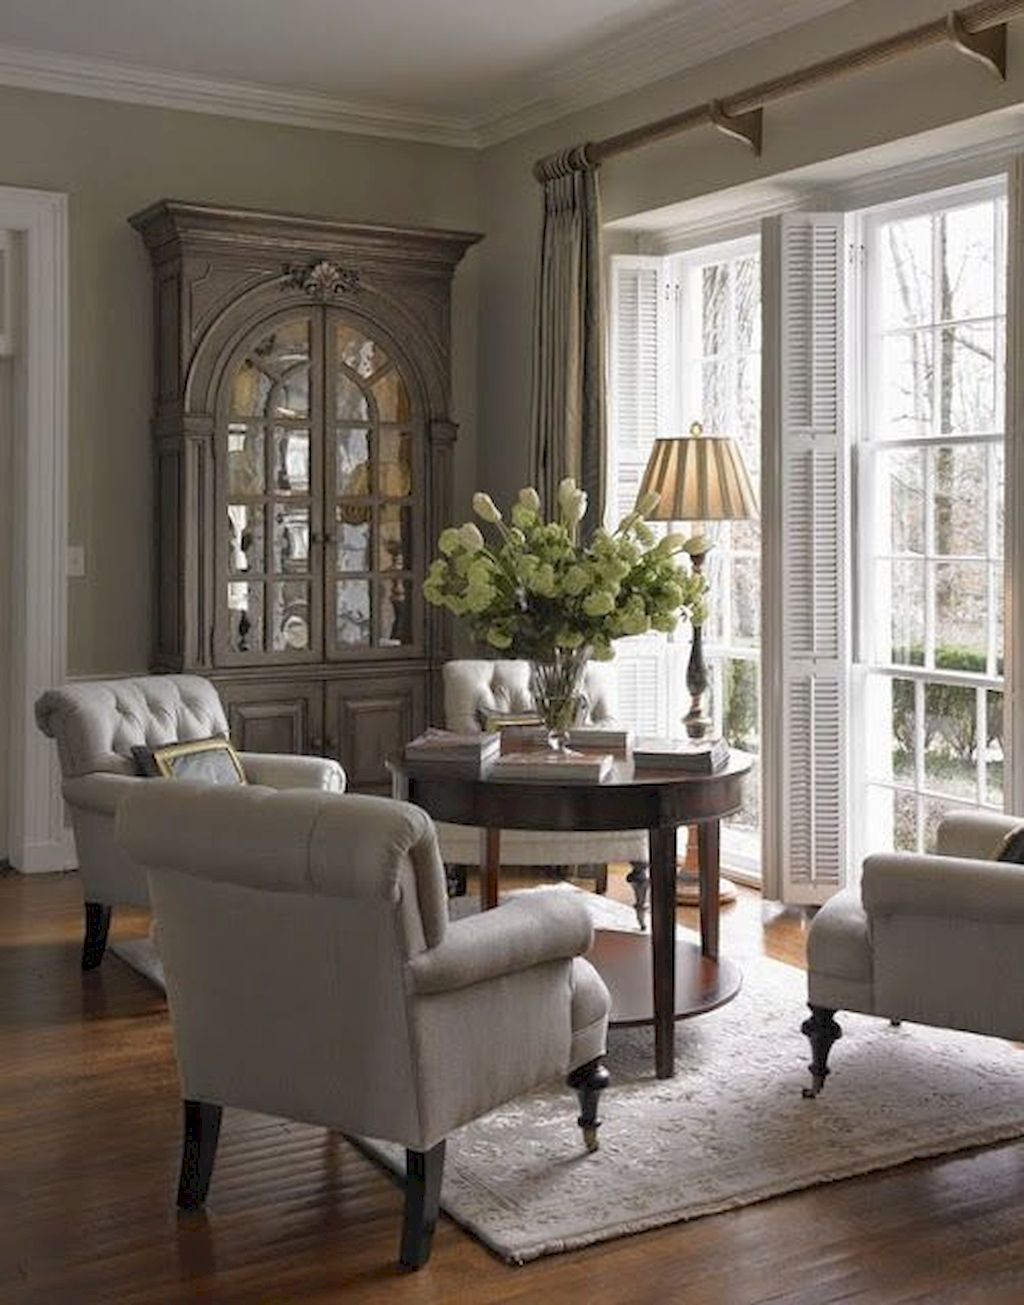 Country Living Room Designs Endearing 15 Beautiful French Country Living Room Design Ideas  French Design Ideas